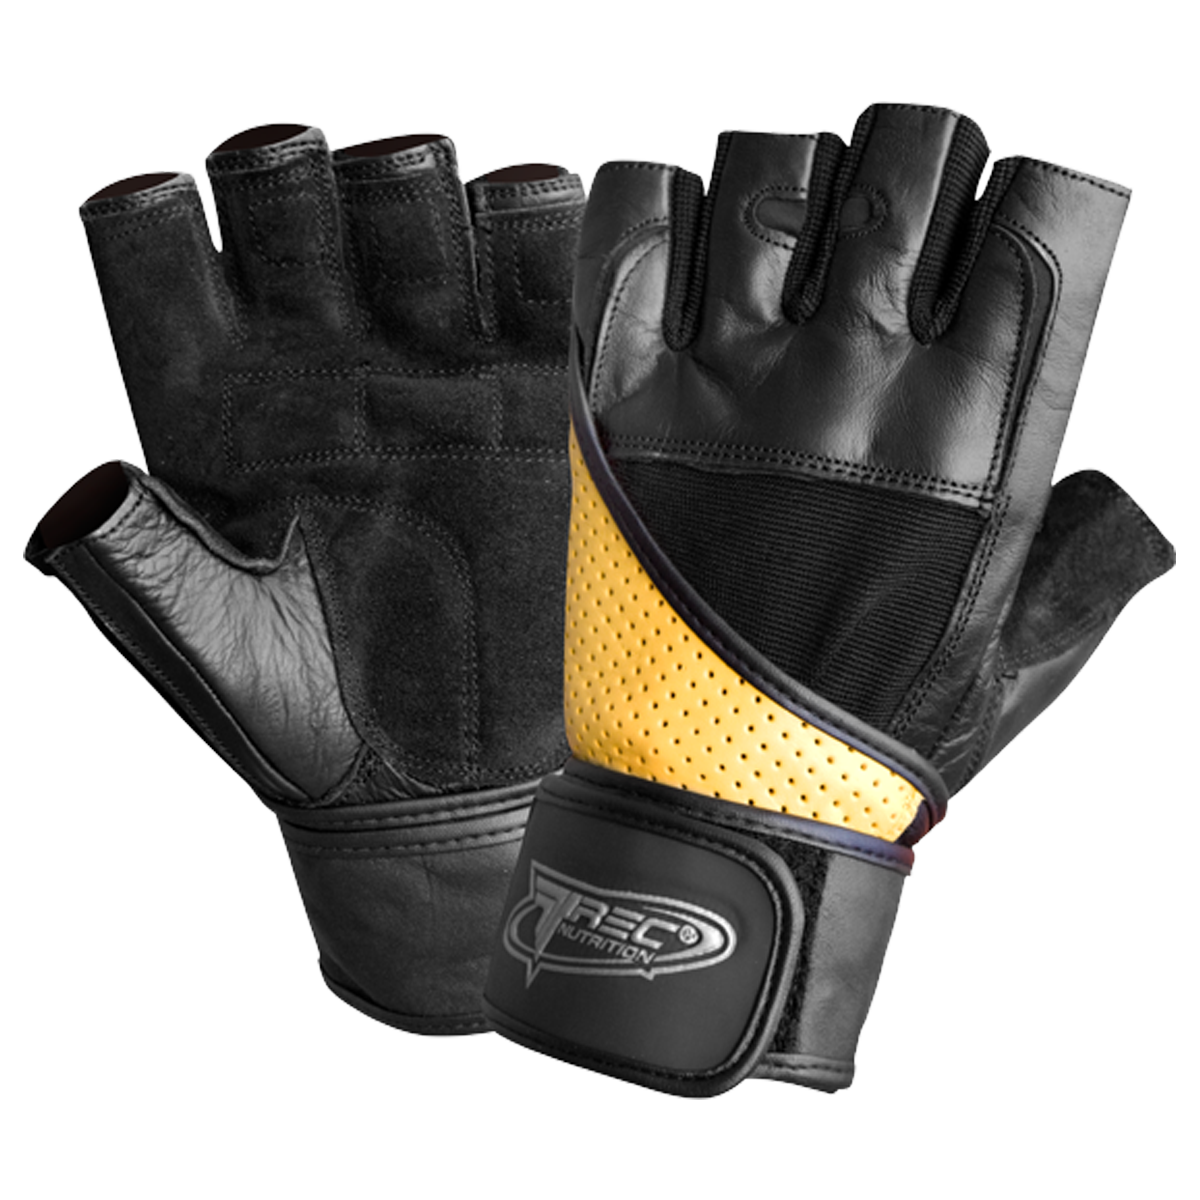 gloves-super-strong-yellow-glowne-xh